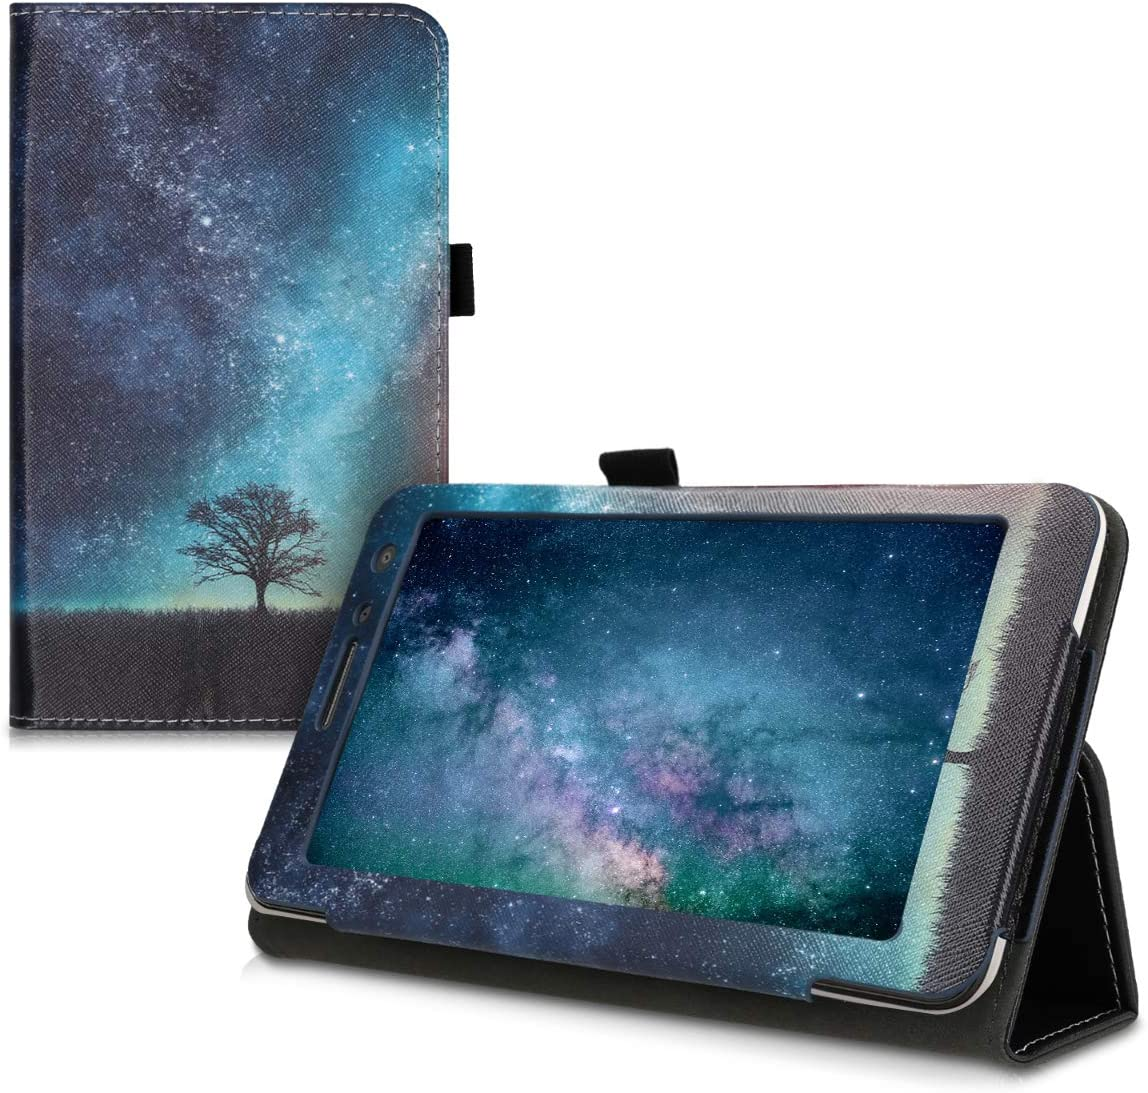 kwmobile Case Compatible with Huawei MediaPad T1 7.0 - Slim PU Leather Tablet Cover with Stand Feature - Cosmic Nature Blue/Grey/Black